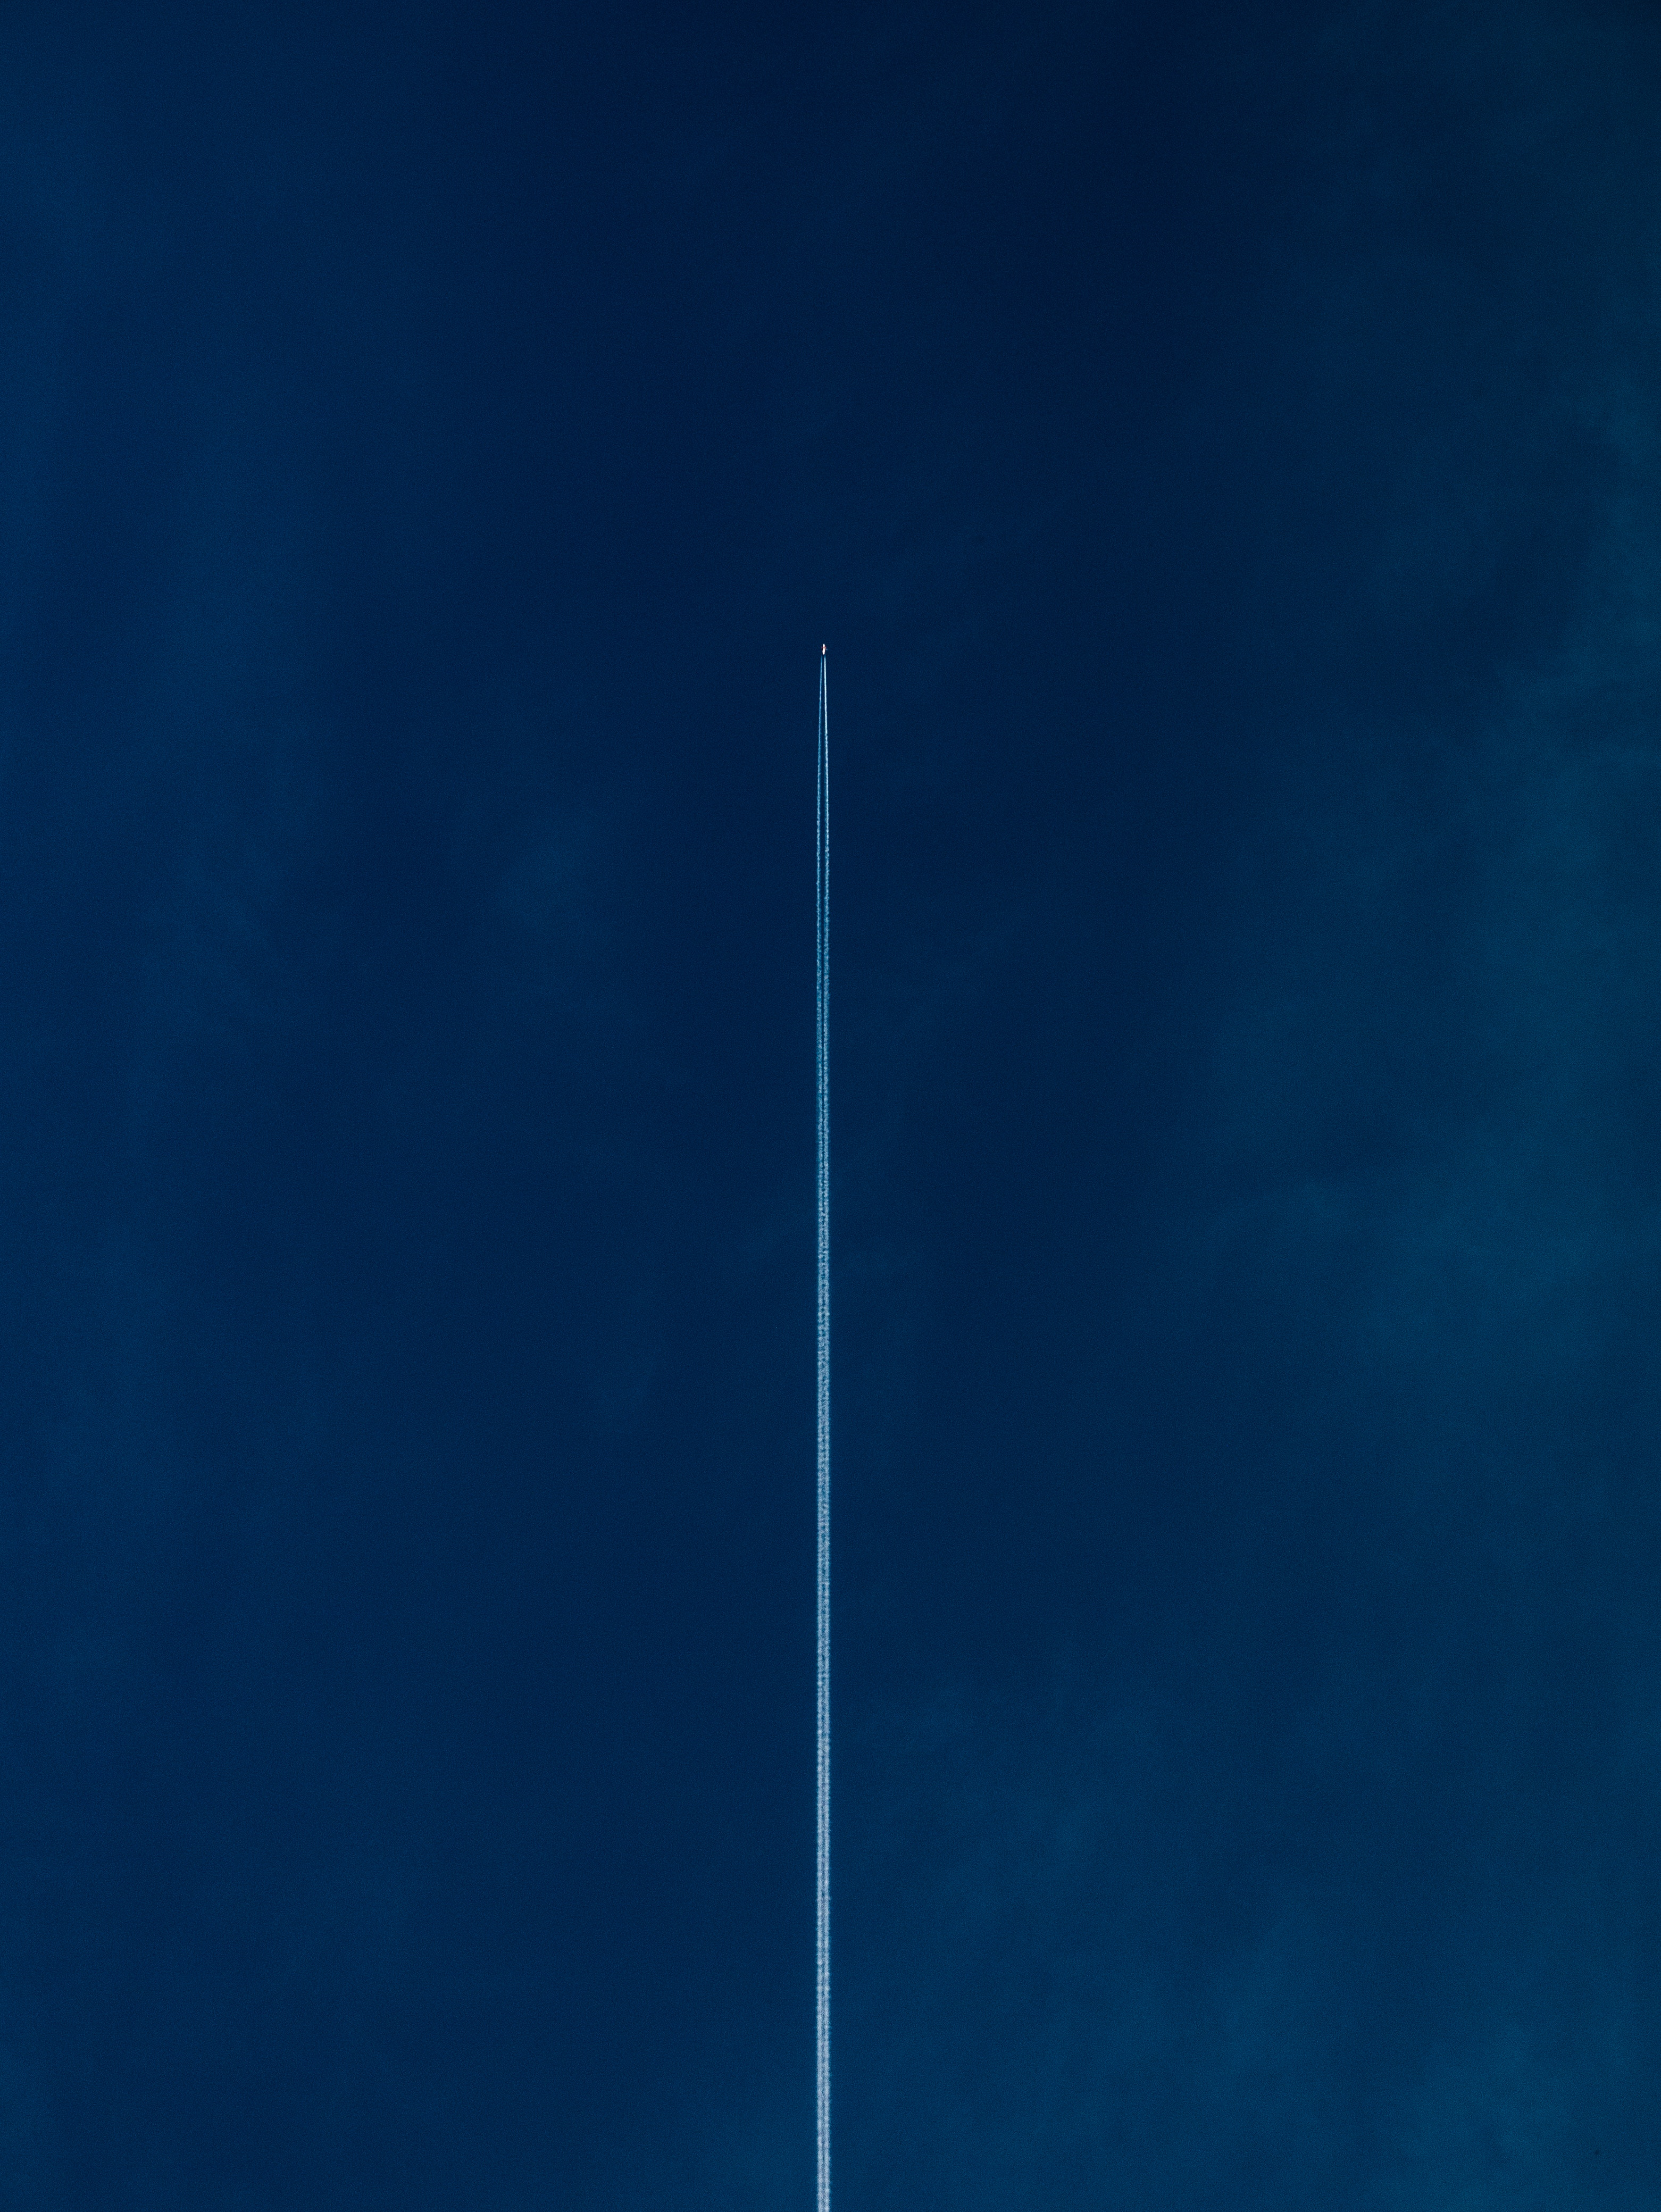 145887 Screensavers and Wallpapers Flight for phone. Download Sky, Minimalism, Flight, Plane, Airplane, Band, Stripe pictures for free